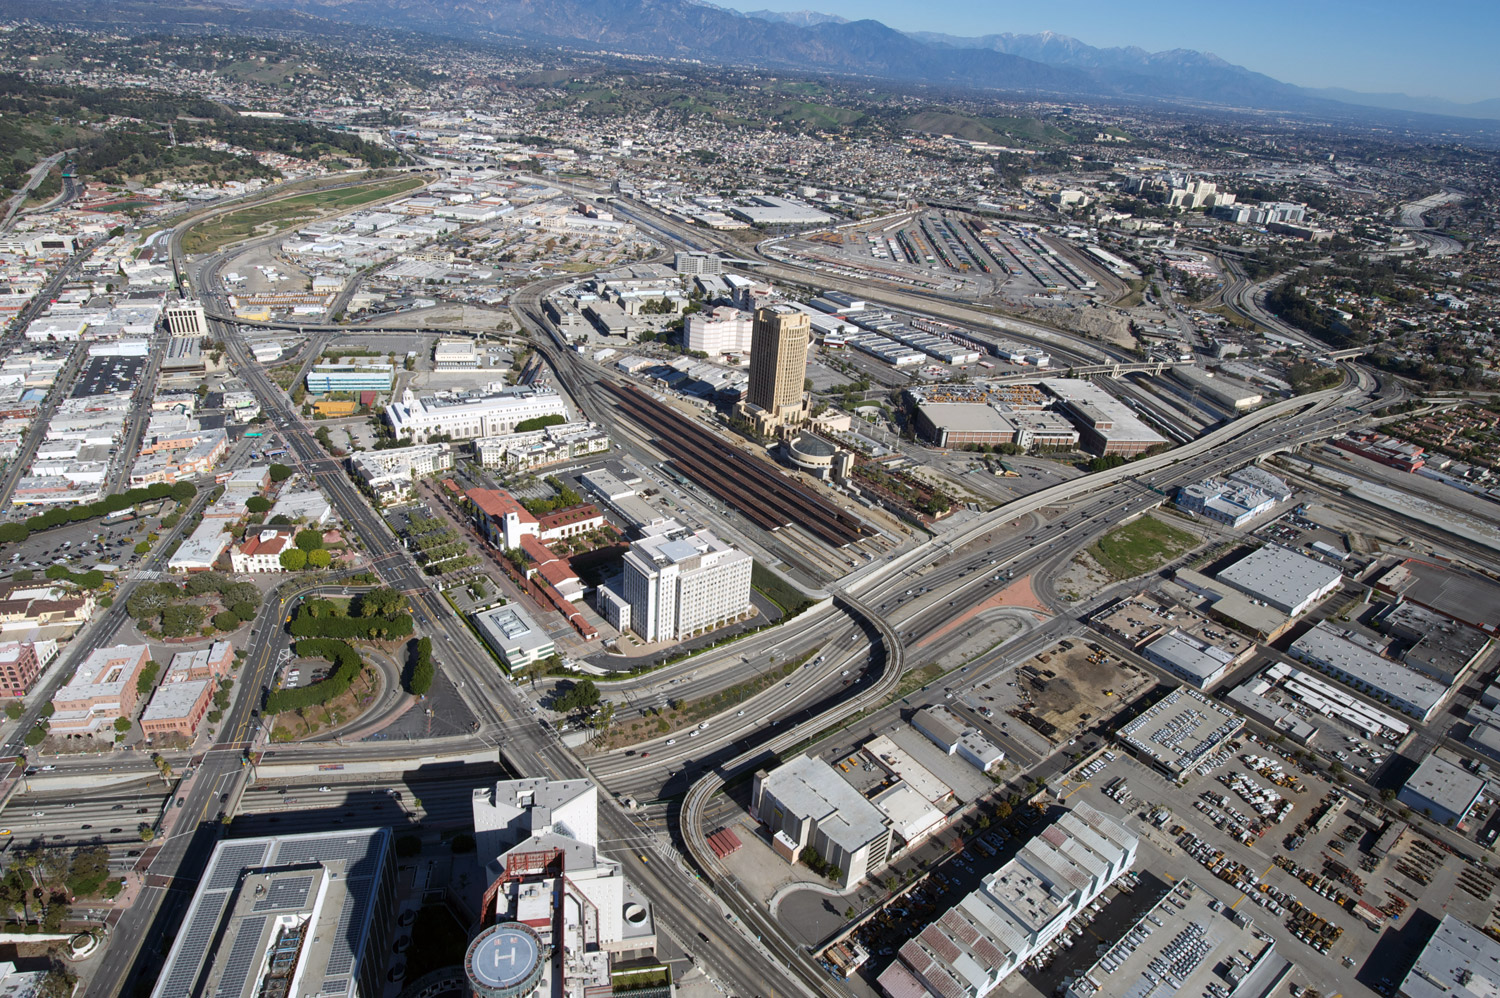 ULI Advisory Panel: Flanked on the east by the potential of the Los Angeles River, Union Station and its environs are ripe with development opportunity.